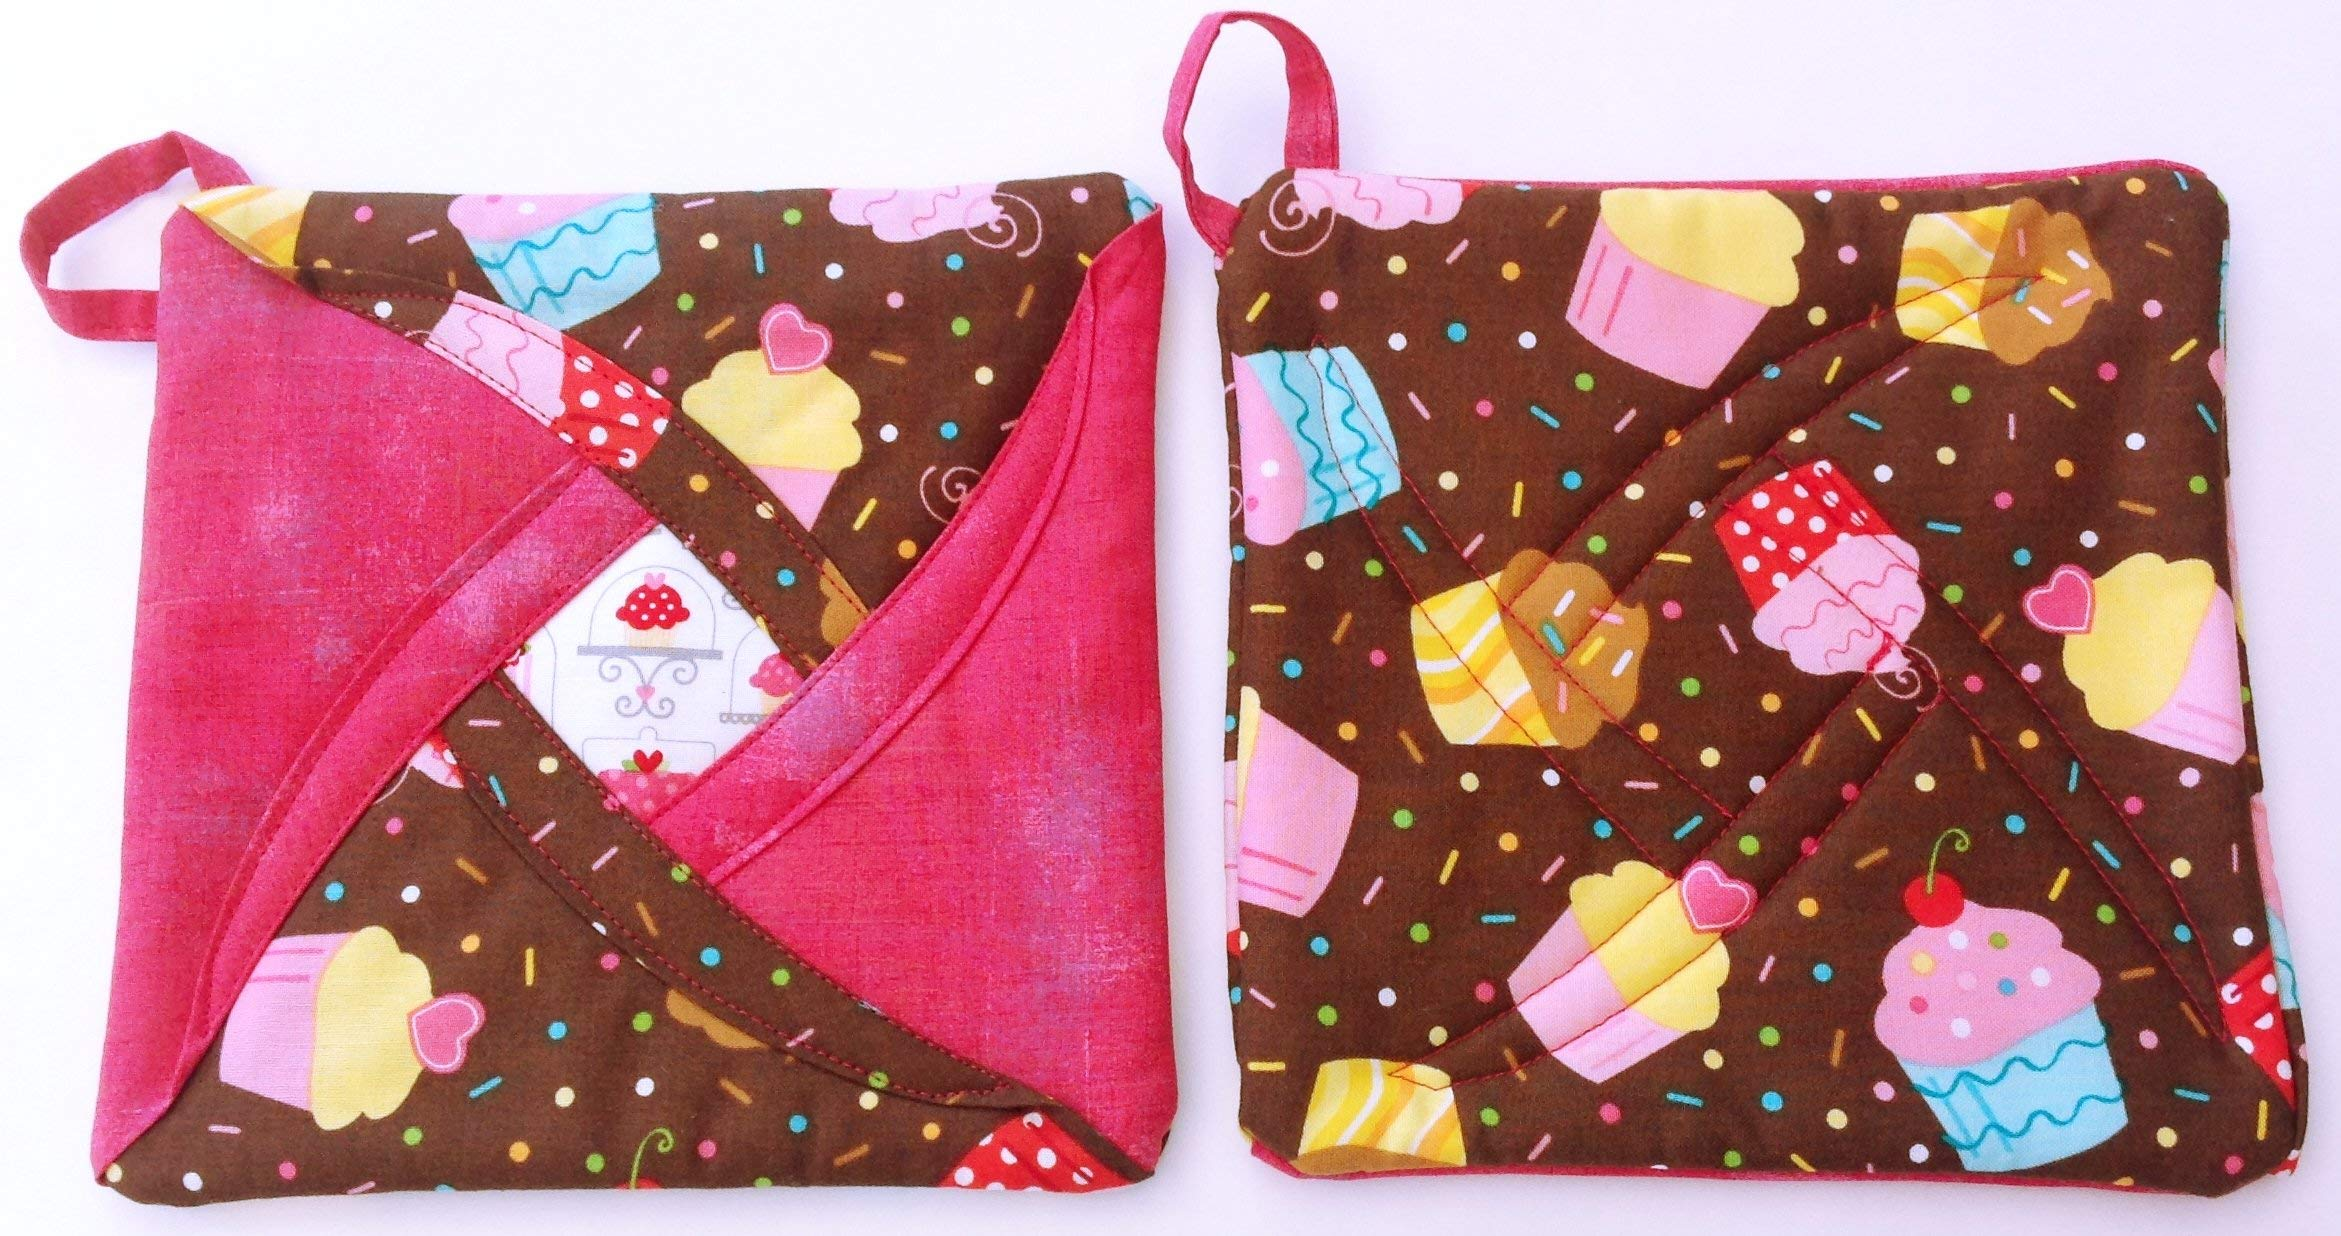 Handmade Reversible Quilted Potholders | Heat Resistant | Cupcake Design | Set includes 2 potholders